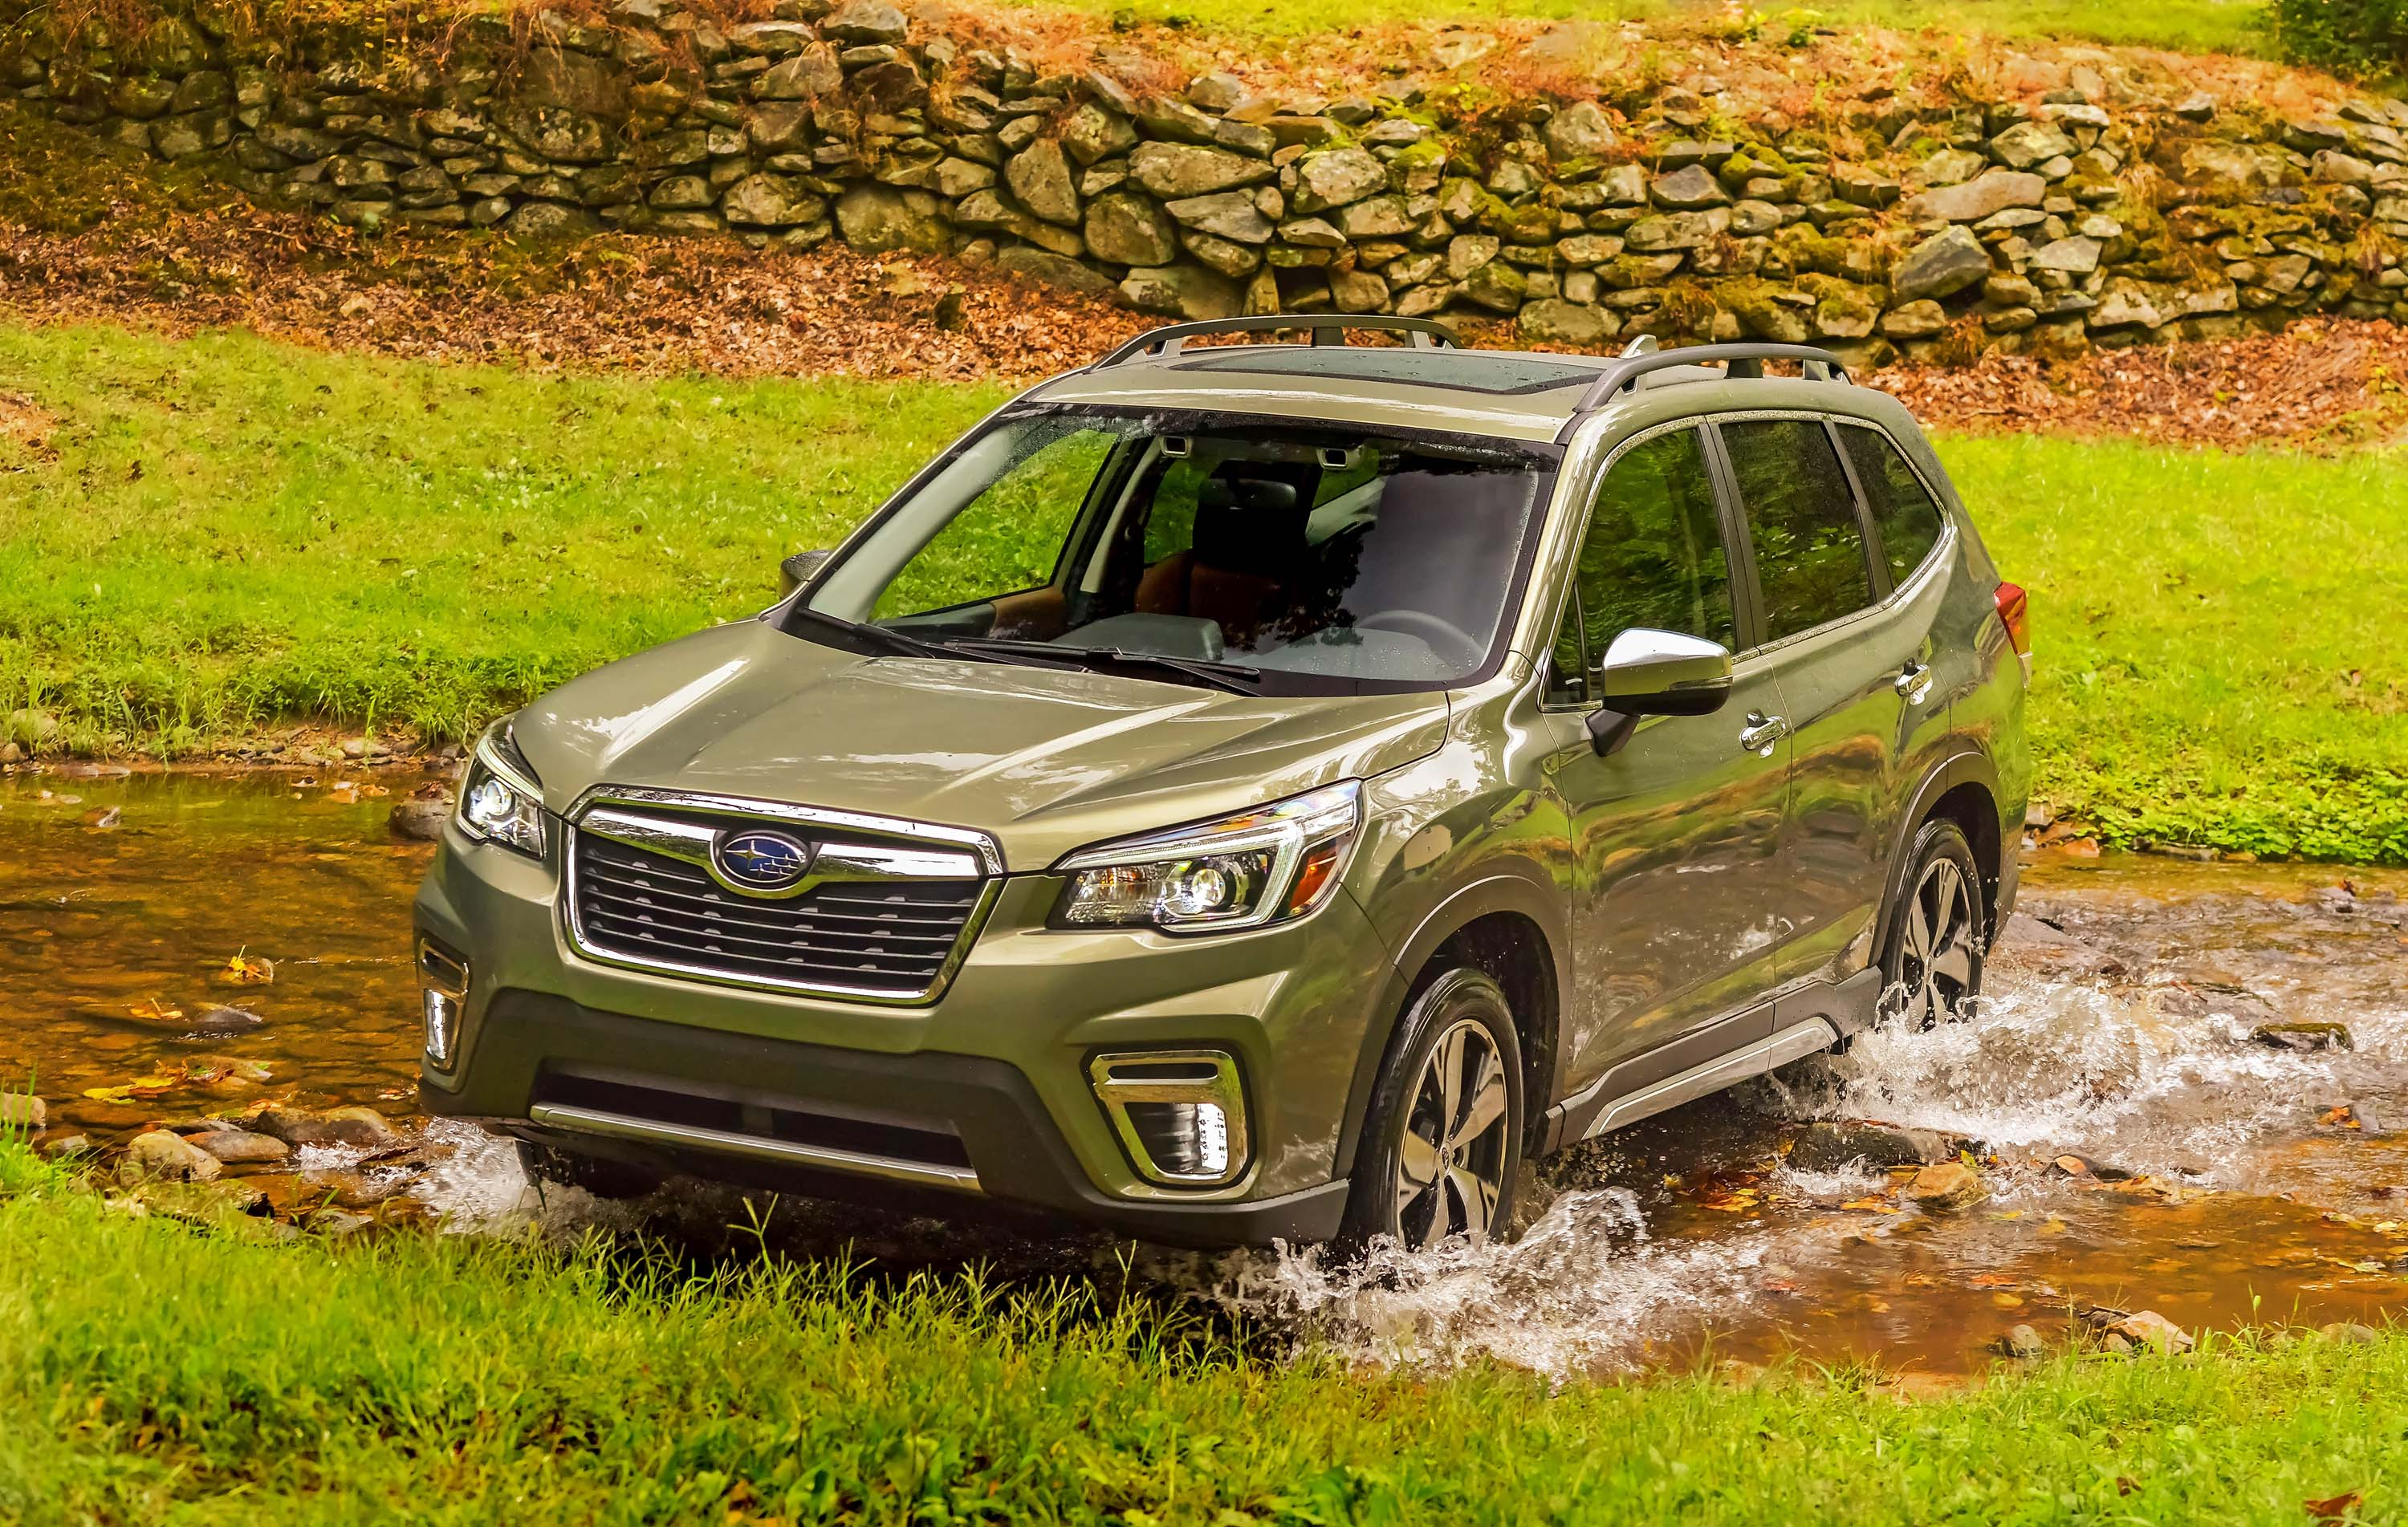 52 All New Subaru Forester 2020 Redesign and Concept for Subaru Forester 2020